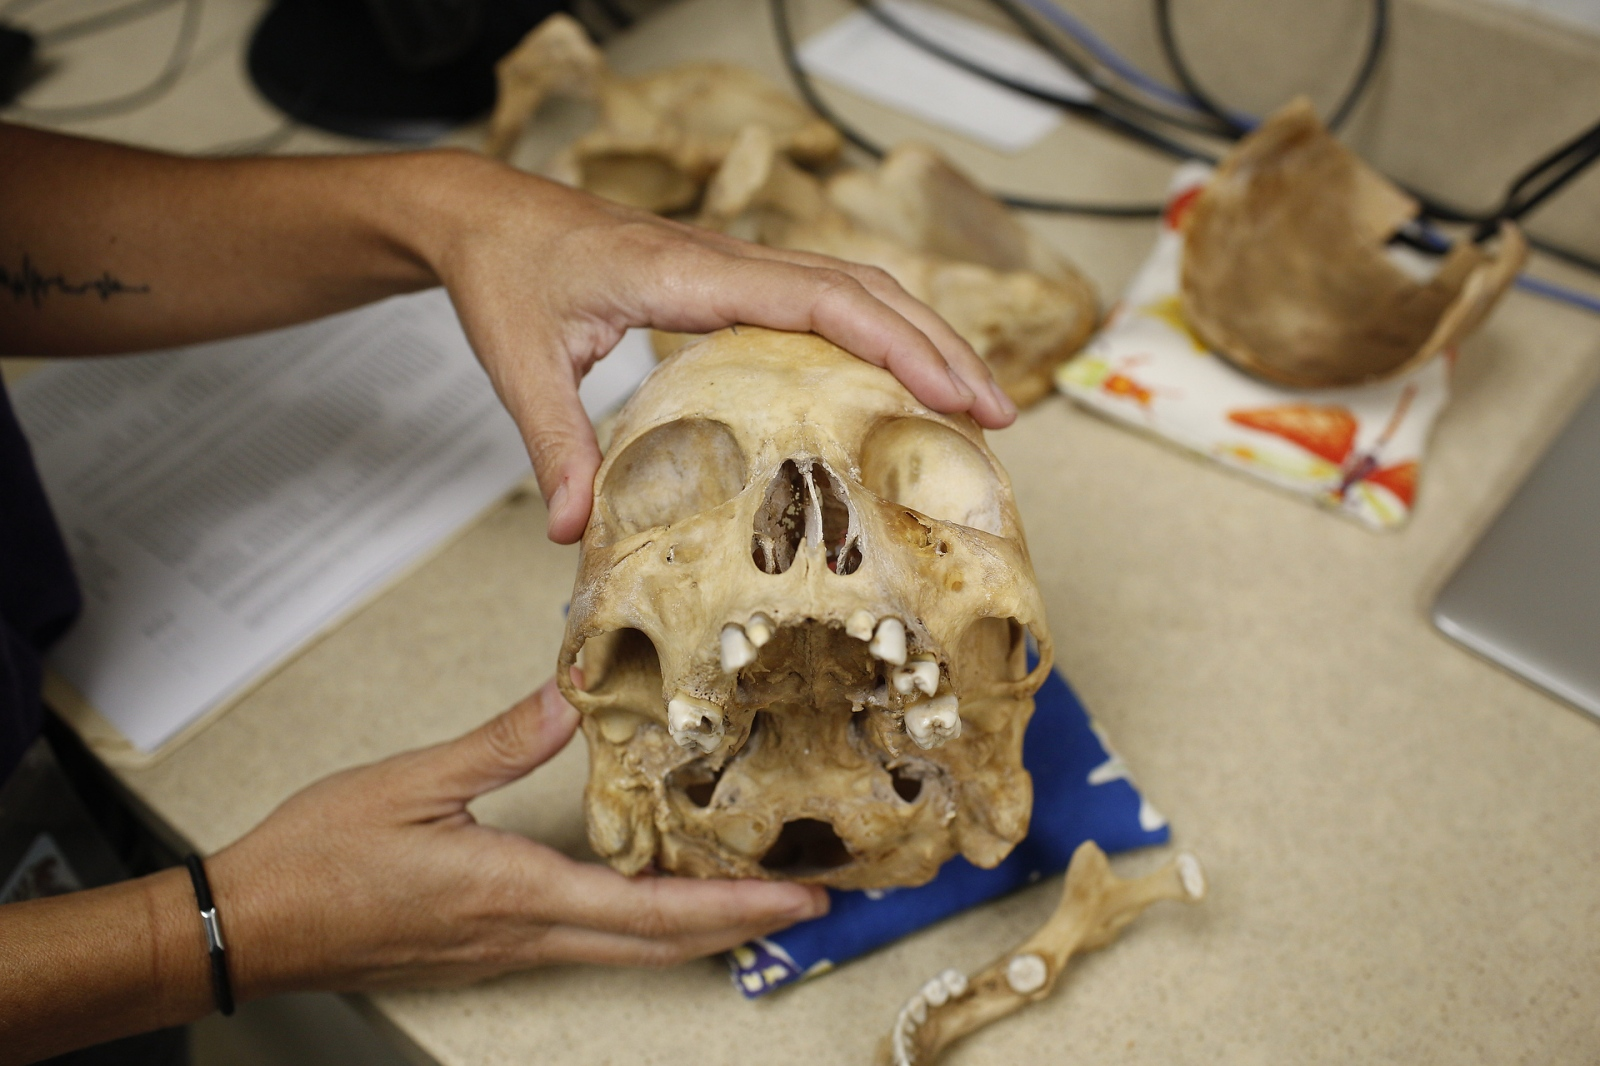 The skull of a male migrant who passed away on the trip from the border through Brooks County and was buried in an unmarked grave at Sacred Heart Cemetery. Dr. Kate Spradley and Dr, Maria J Adserias Garriga and staff and students at Texas State Forensic Anthropology Departments Operation Identification are trying to identify all remains in hopes of returning them to their families. (Kevin C Downs/Agence Cosmos)